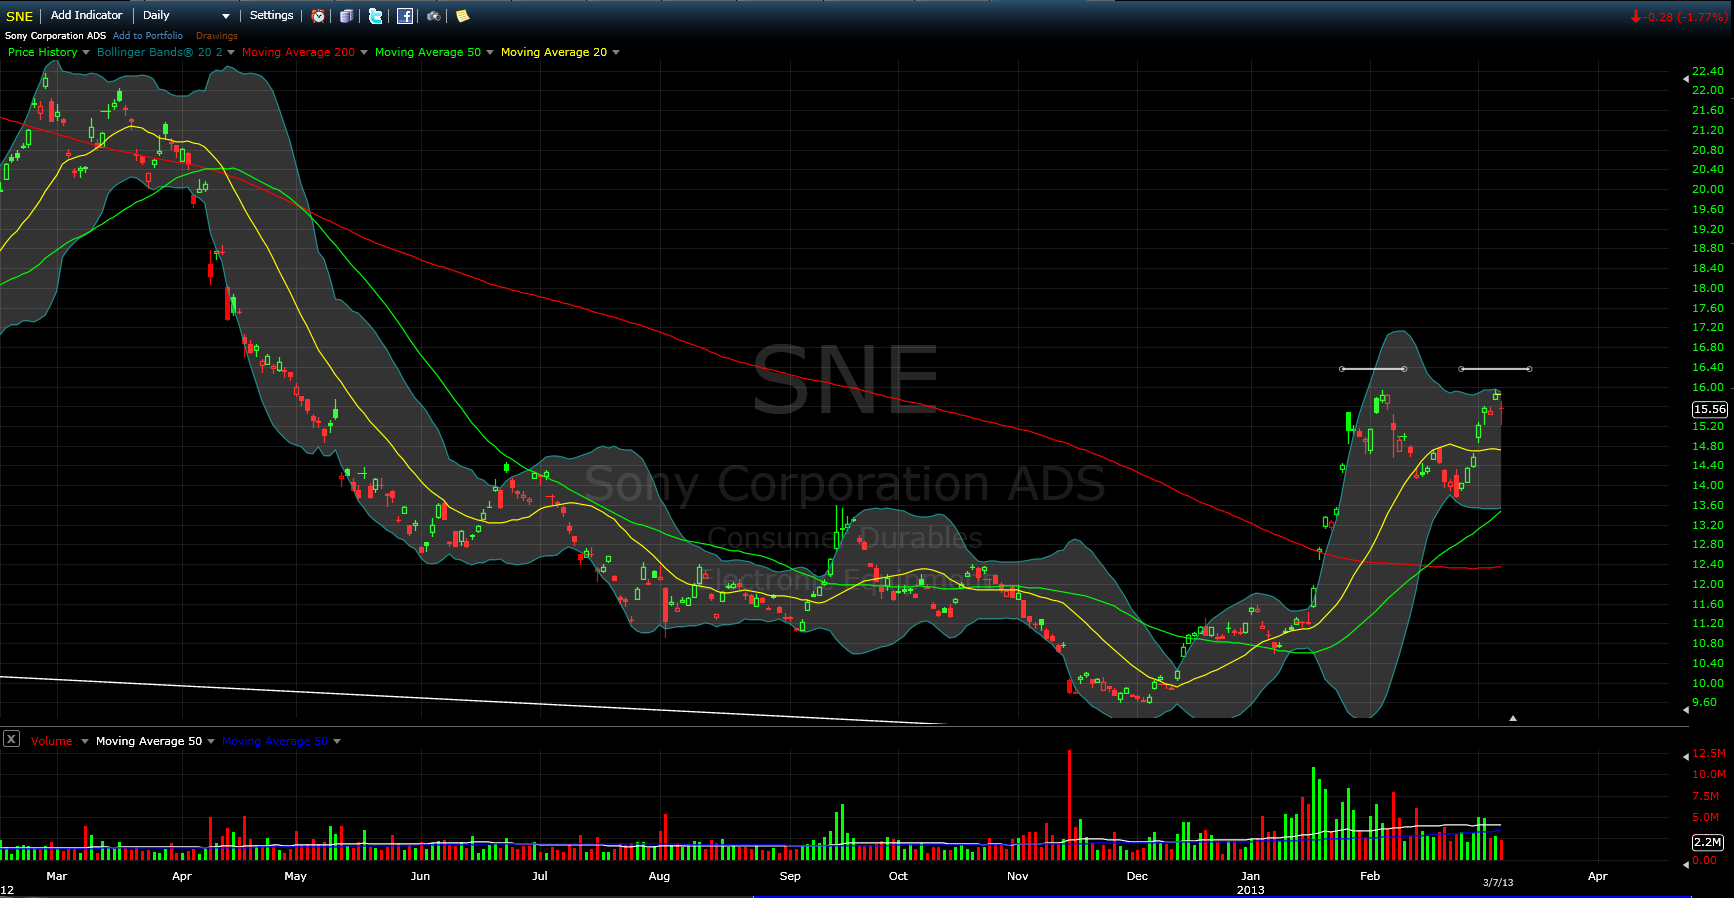 SNE Daily